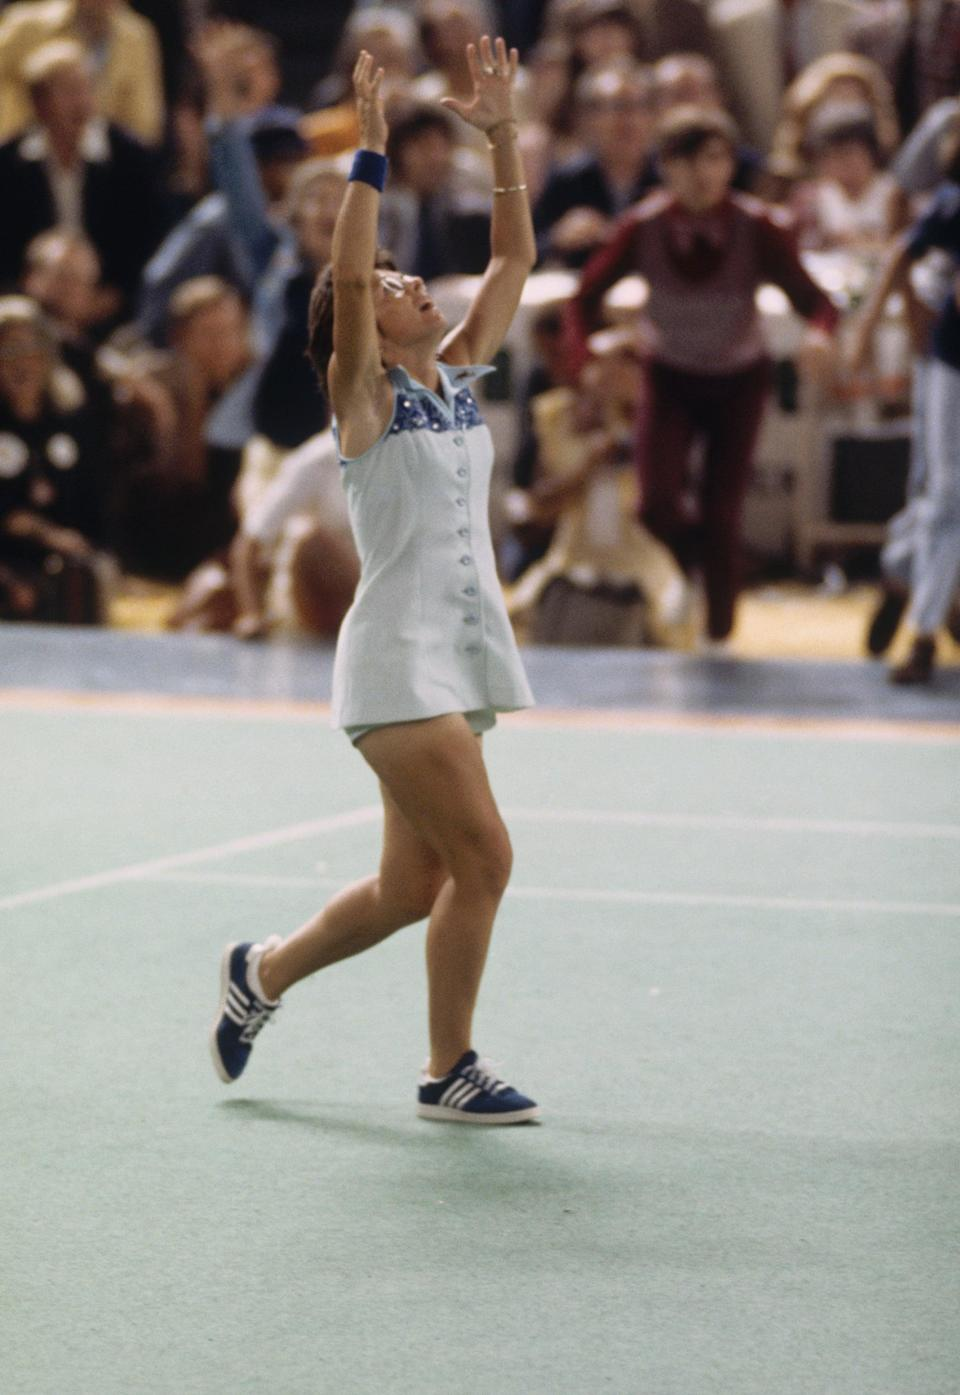 """<p>Billie Jean King famously beat Bobby Riggs in their $100,000 winner-take-all """"Battle of the Sexes"""" tennis match, which took place September 20, 1973. King's designer for the match, legendary British tennis couturier Ted Tinling, brought along a shimmering dress that King looked great in, but she felt it was too scratchy. That's how the back-up option was introduced: <a href=""""https://www.smithsonianmag.com/arts-culture/how-billie-jean-king-picked-her-outfit-for-the-battle-of-the-sexes-match-89938552/"""" class=""""link rapid-noclick-resp"""" rel=""""nofollow noopener"""" target=""""_blank"""" data-ylk=""""slk:this nylon dress"""">this nylon dress</a> that paid homage to the Virginia Slims Women's Tennis Tour. The morning of the match, Tingling searched high and low for rhinestones to stitch onto it, according to his memoir. """"I would never have worn pink,"""" Billie Jean King famously said of the historical moment.</p>"""